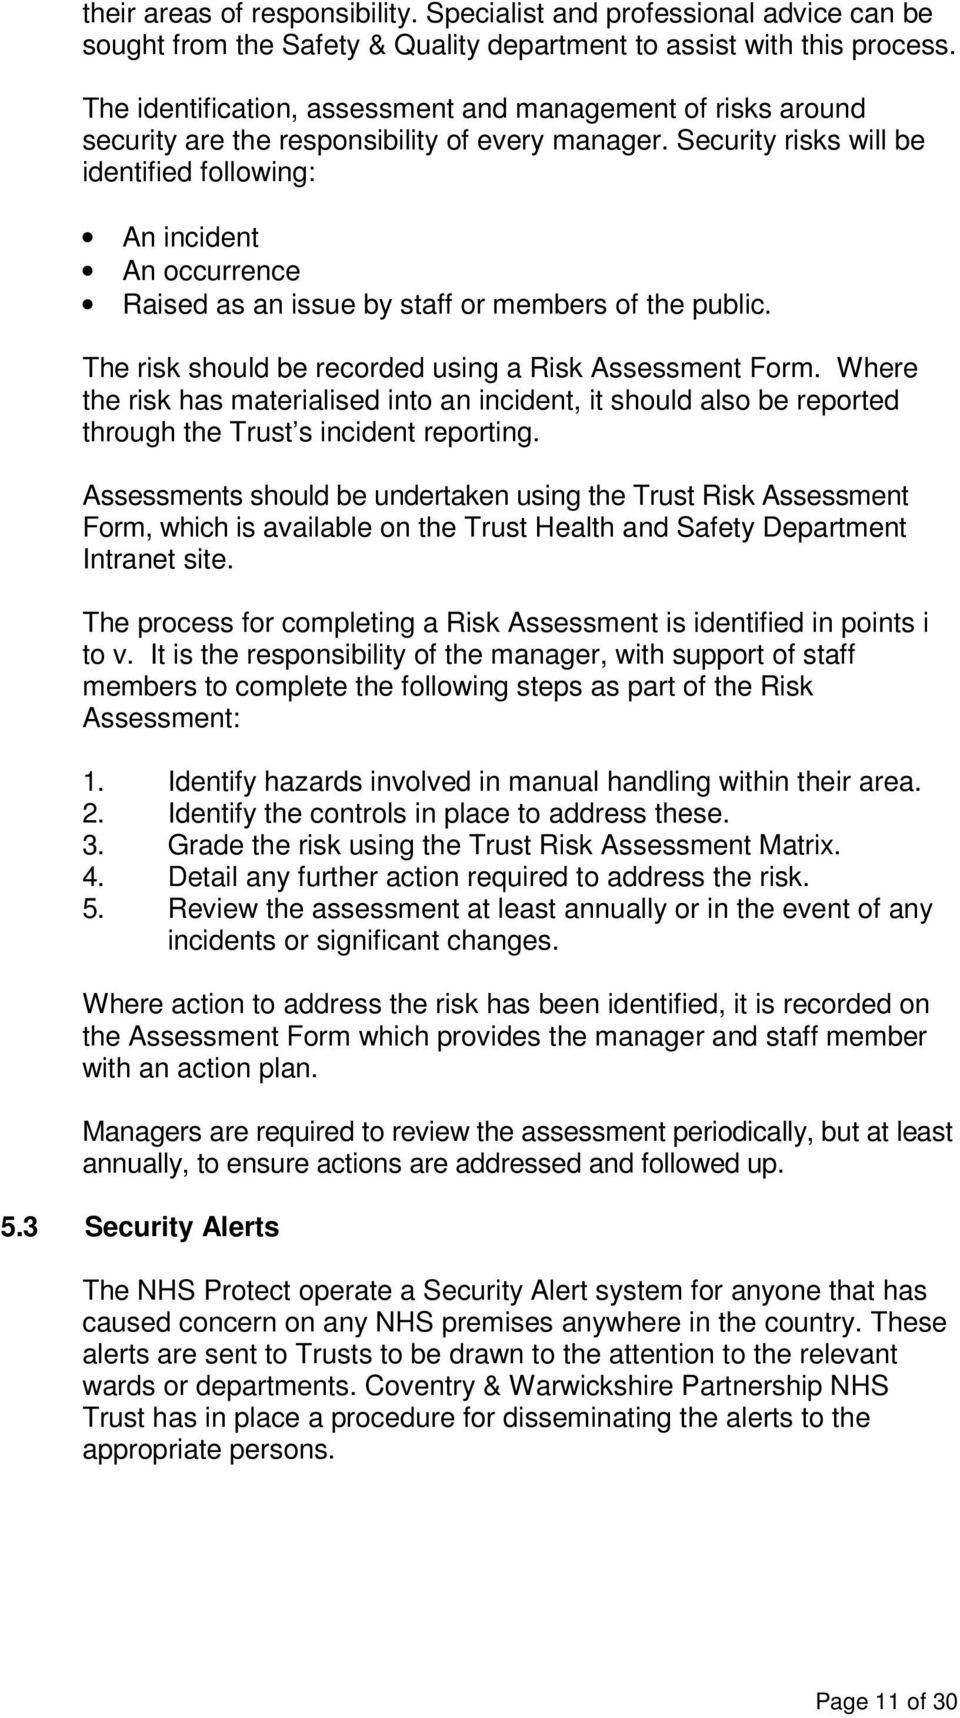 Security risks will be identified following: An incident An occurrence Raised as an issue by staff or members of the public. The risk should be recorded using a Risk Assessment Form.